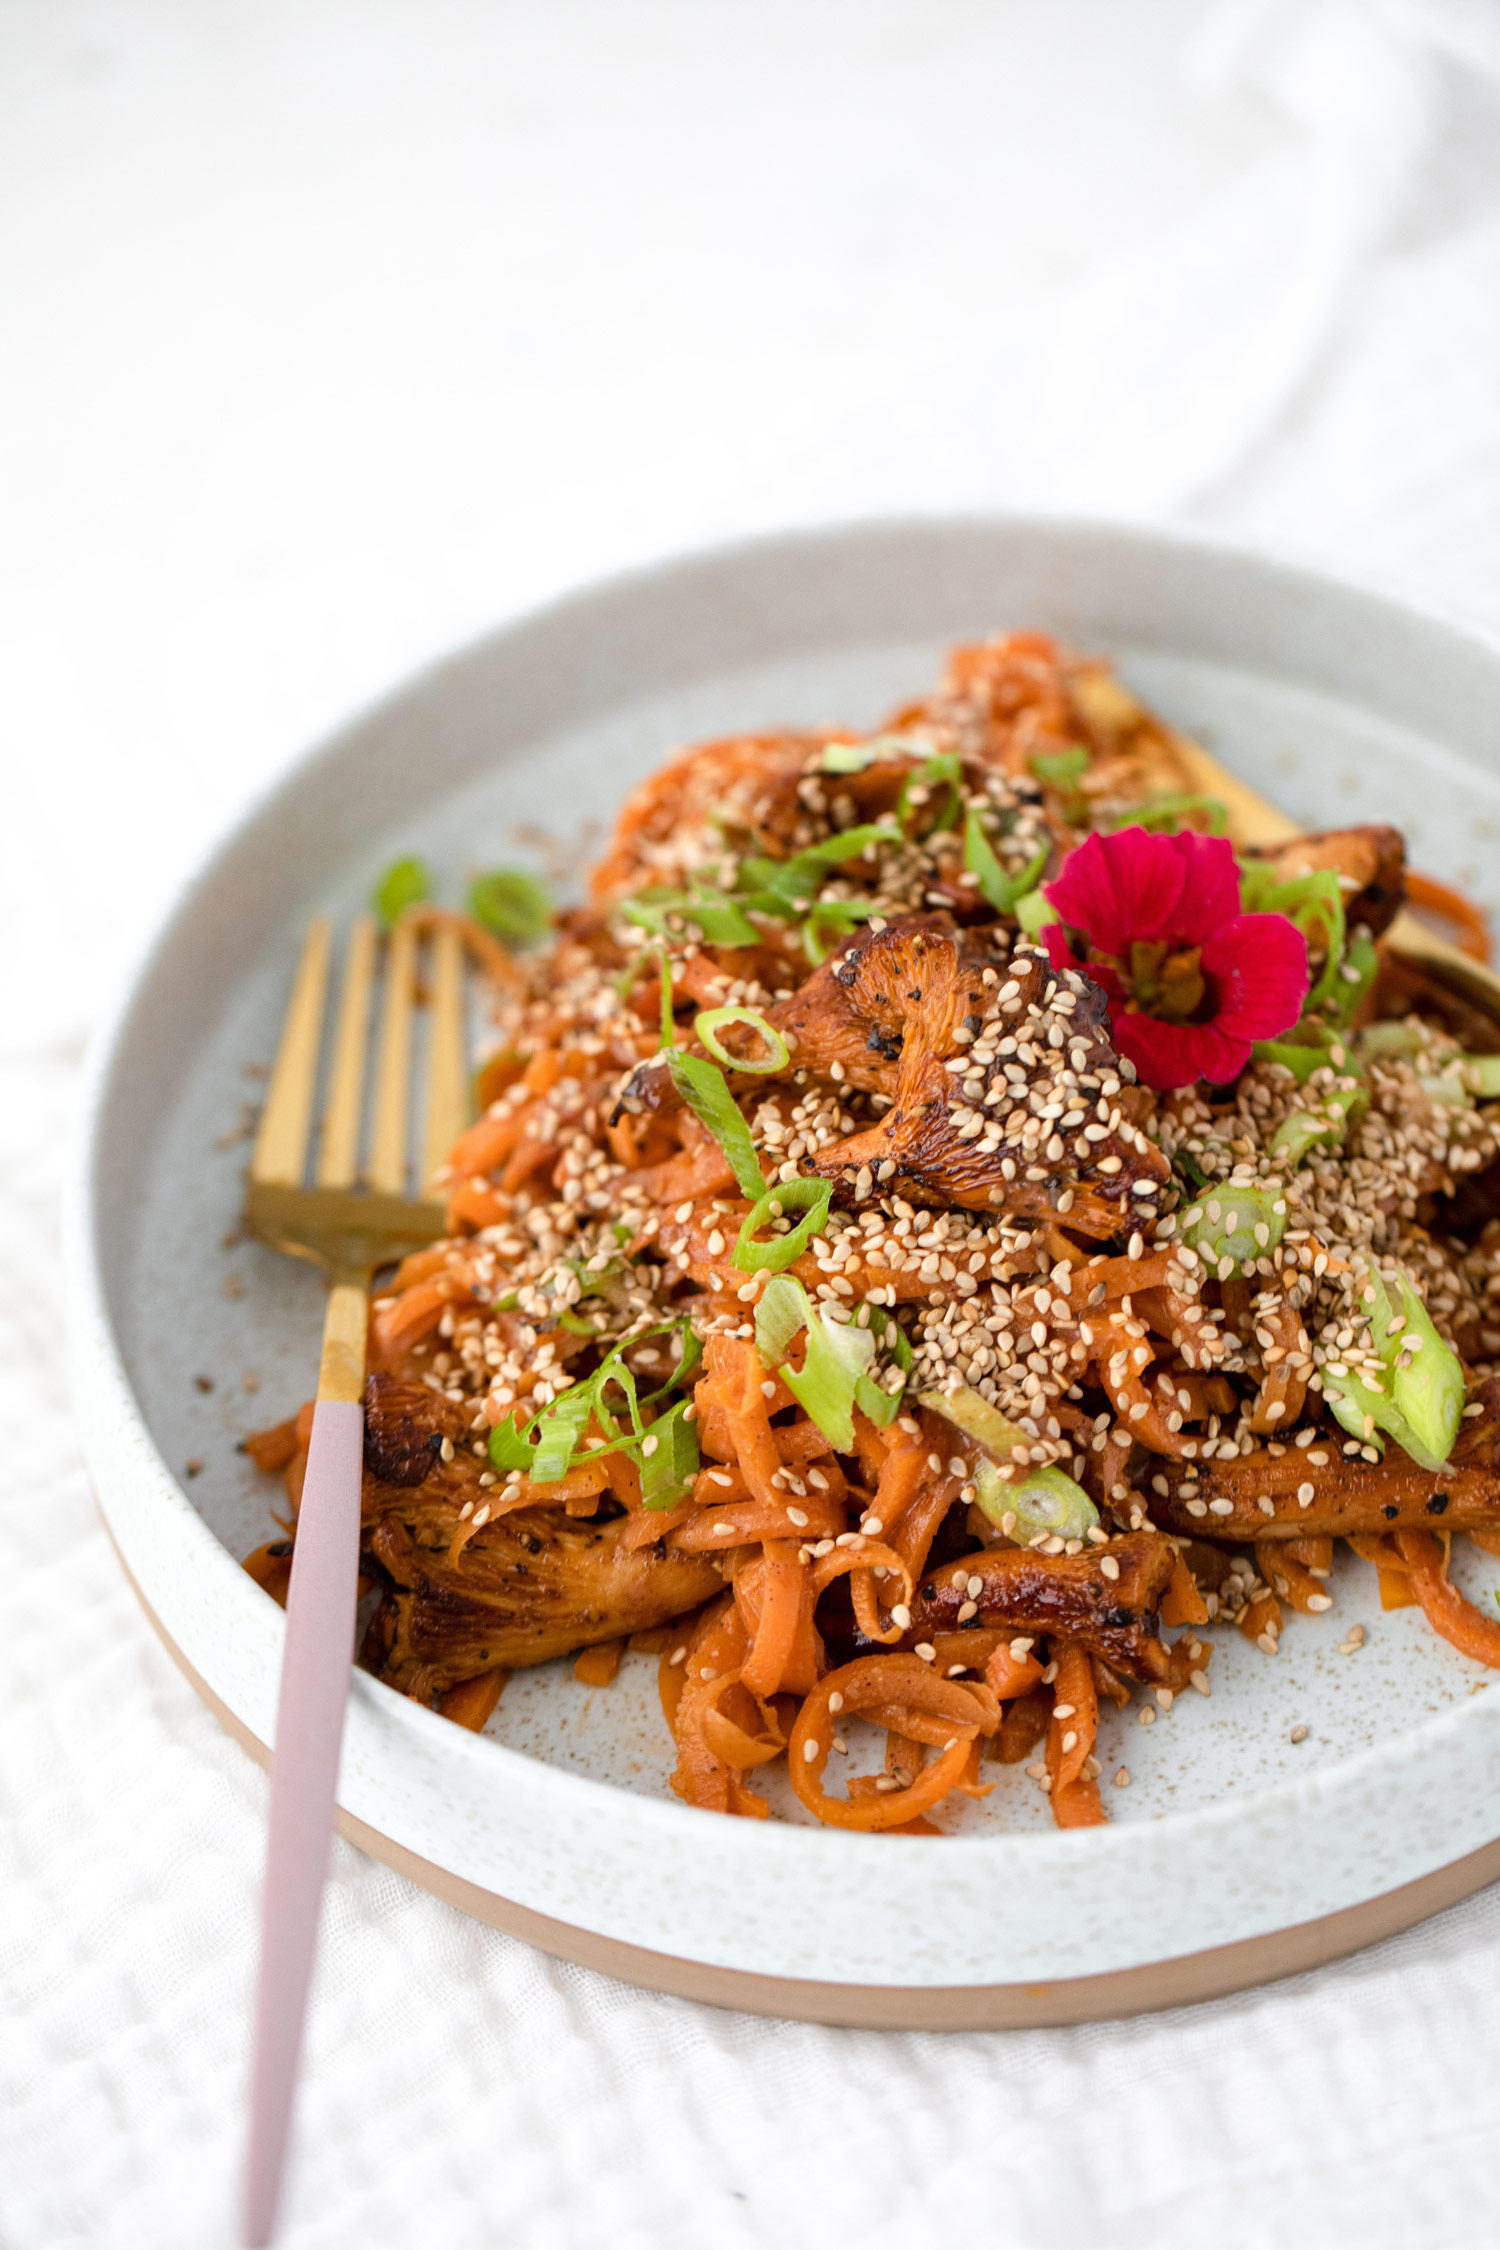 Asian Inspired Carrot Noodles With Chanterelles